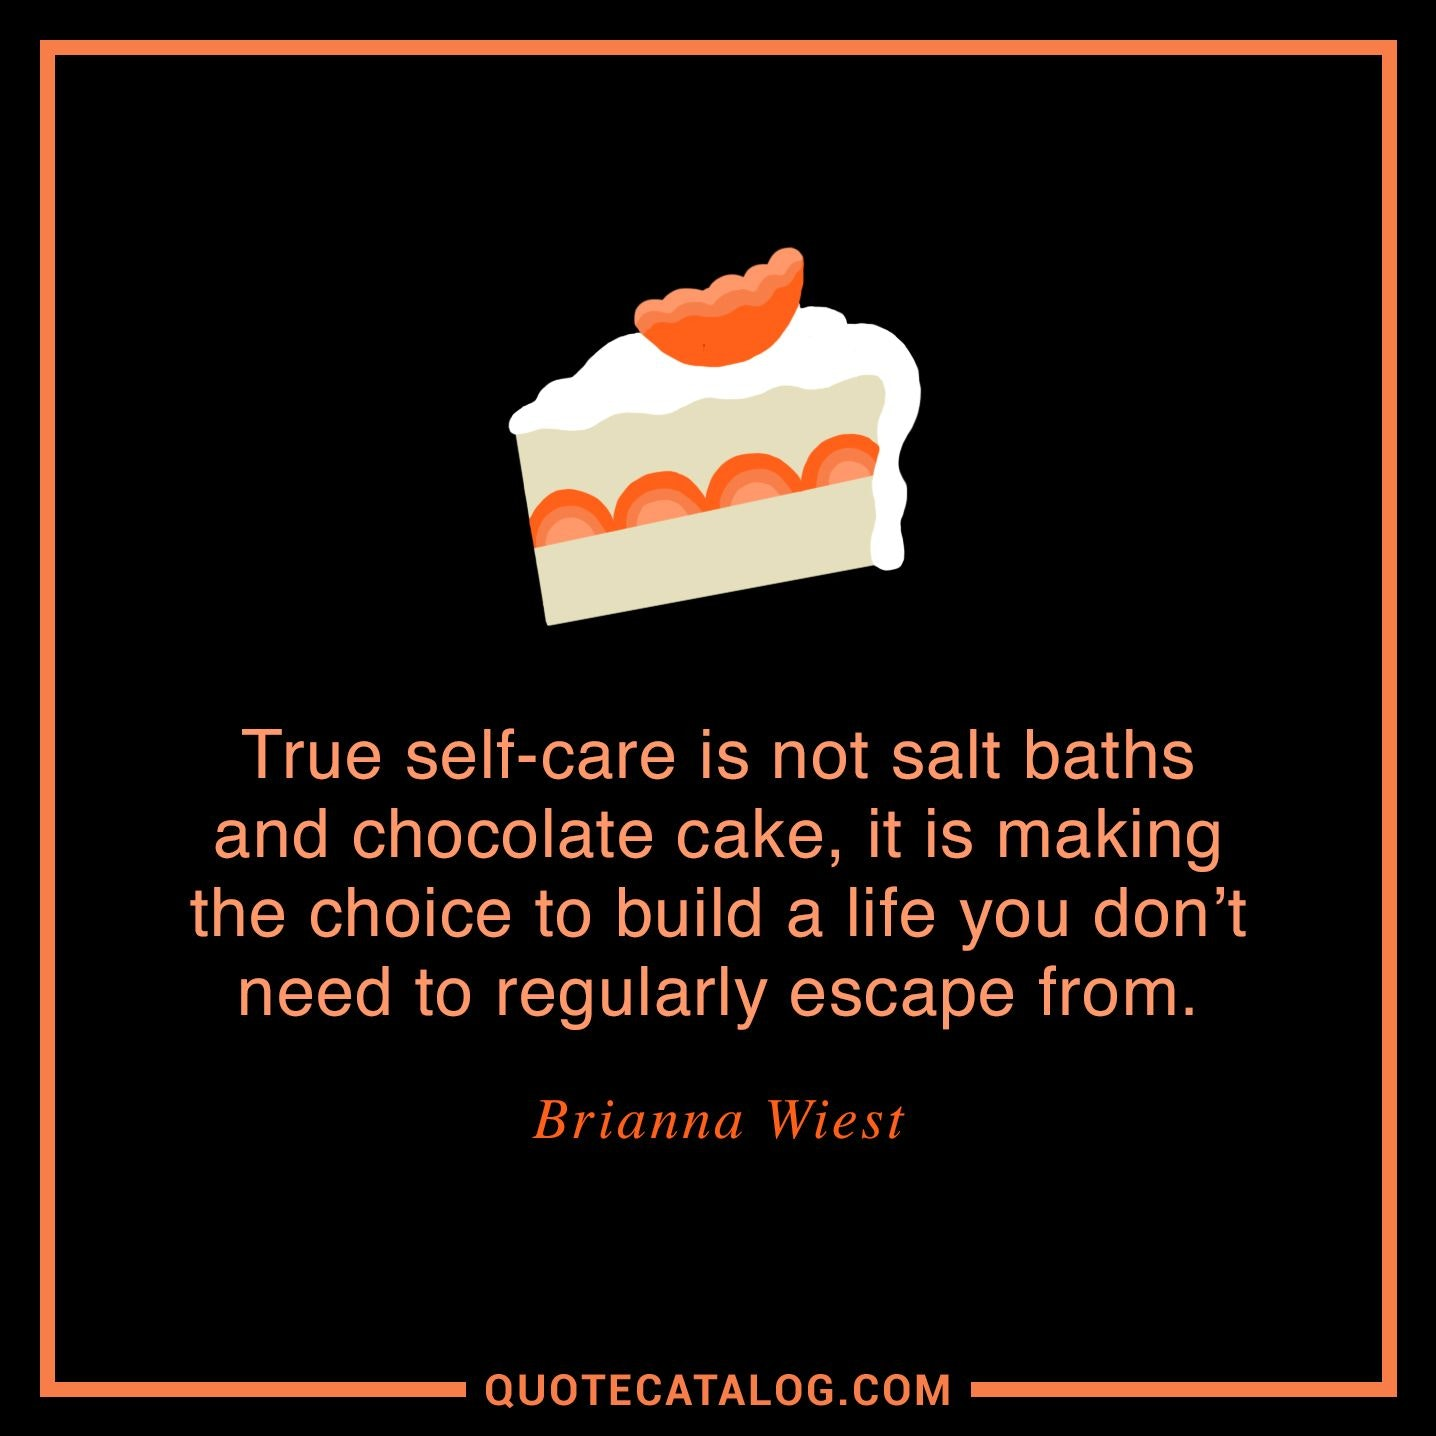 Image of: Faith True Selfcare Is Not Salt Baths And Chocolate Cake It Is Making The Choice To Build Life You Dont Need To Regularly Escape From Quote Catalog 300 Top Inspirational Quotes Quote Pictures Quote Catalog